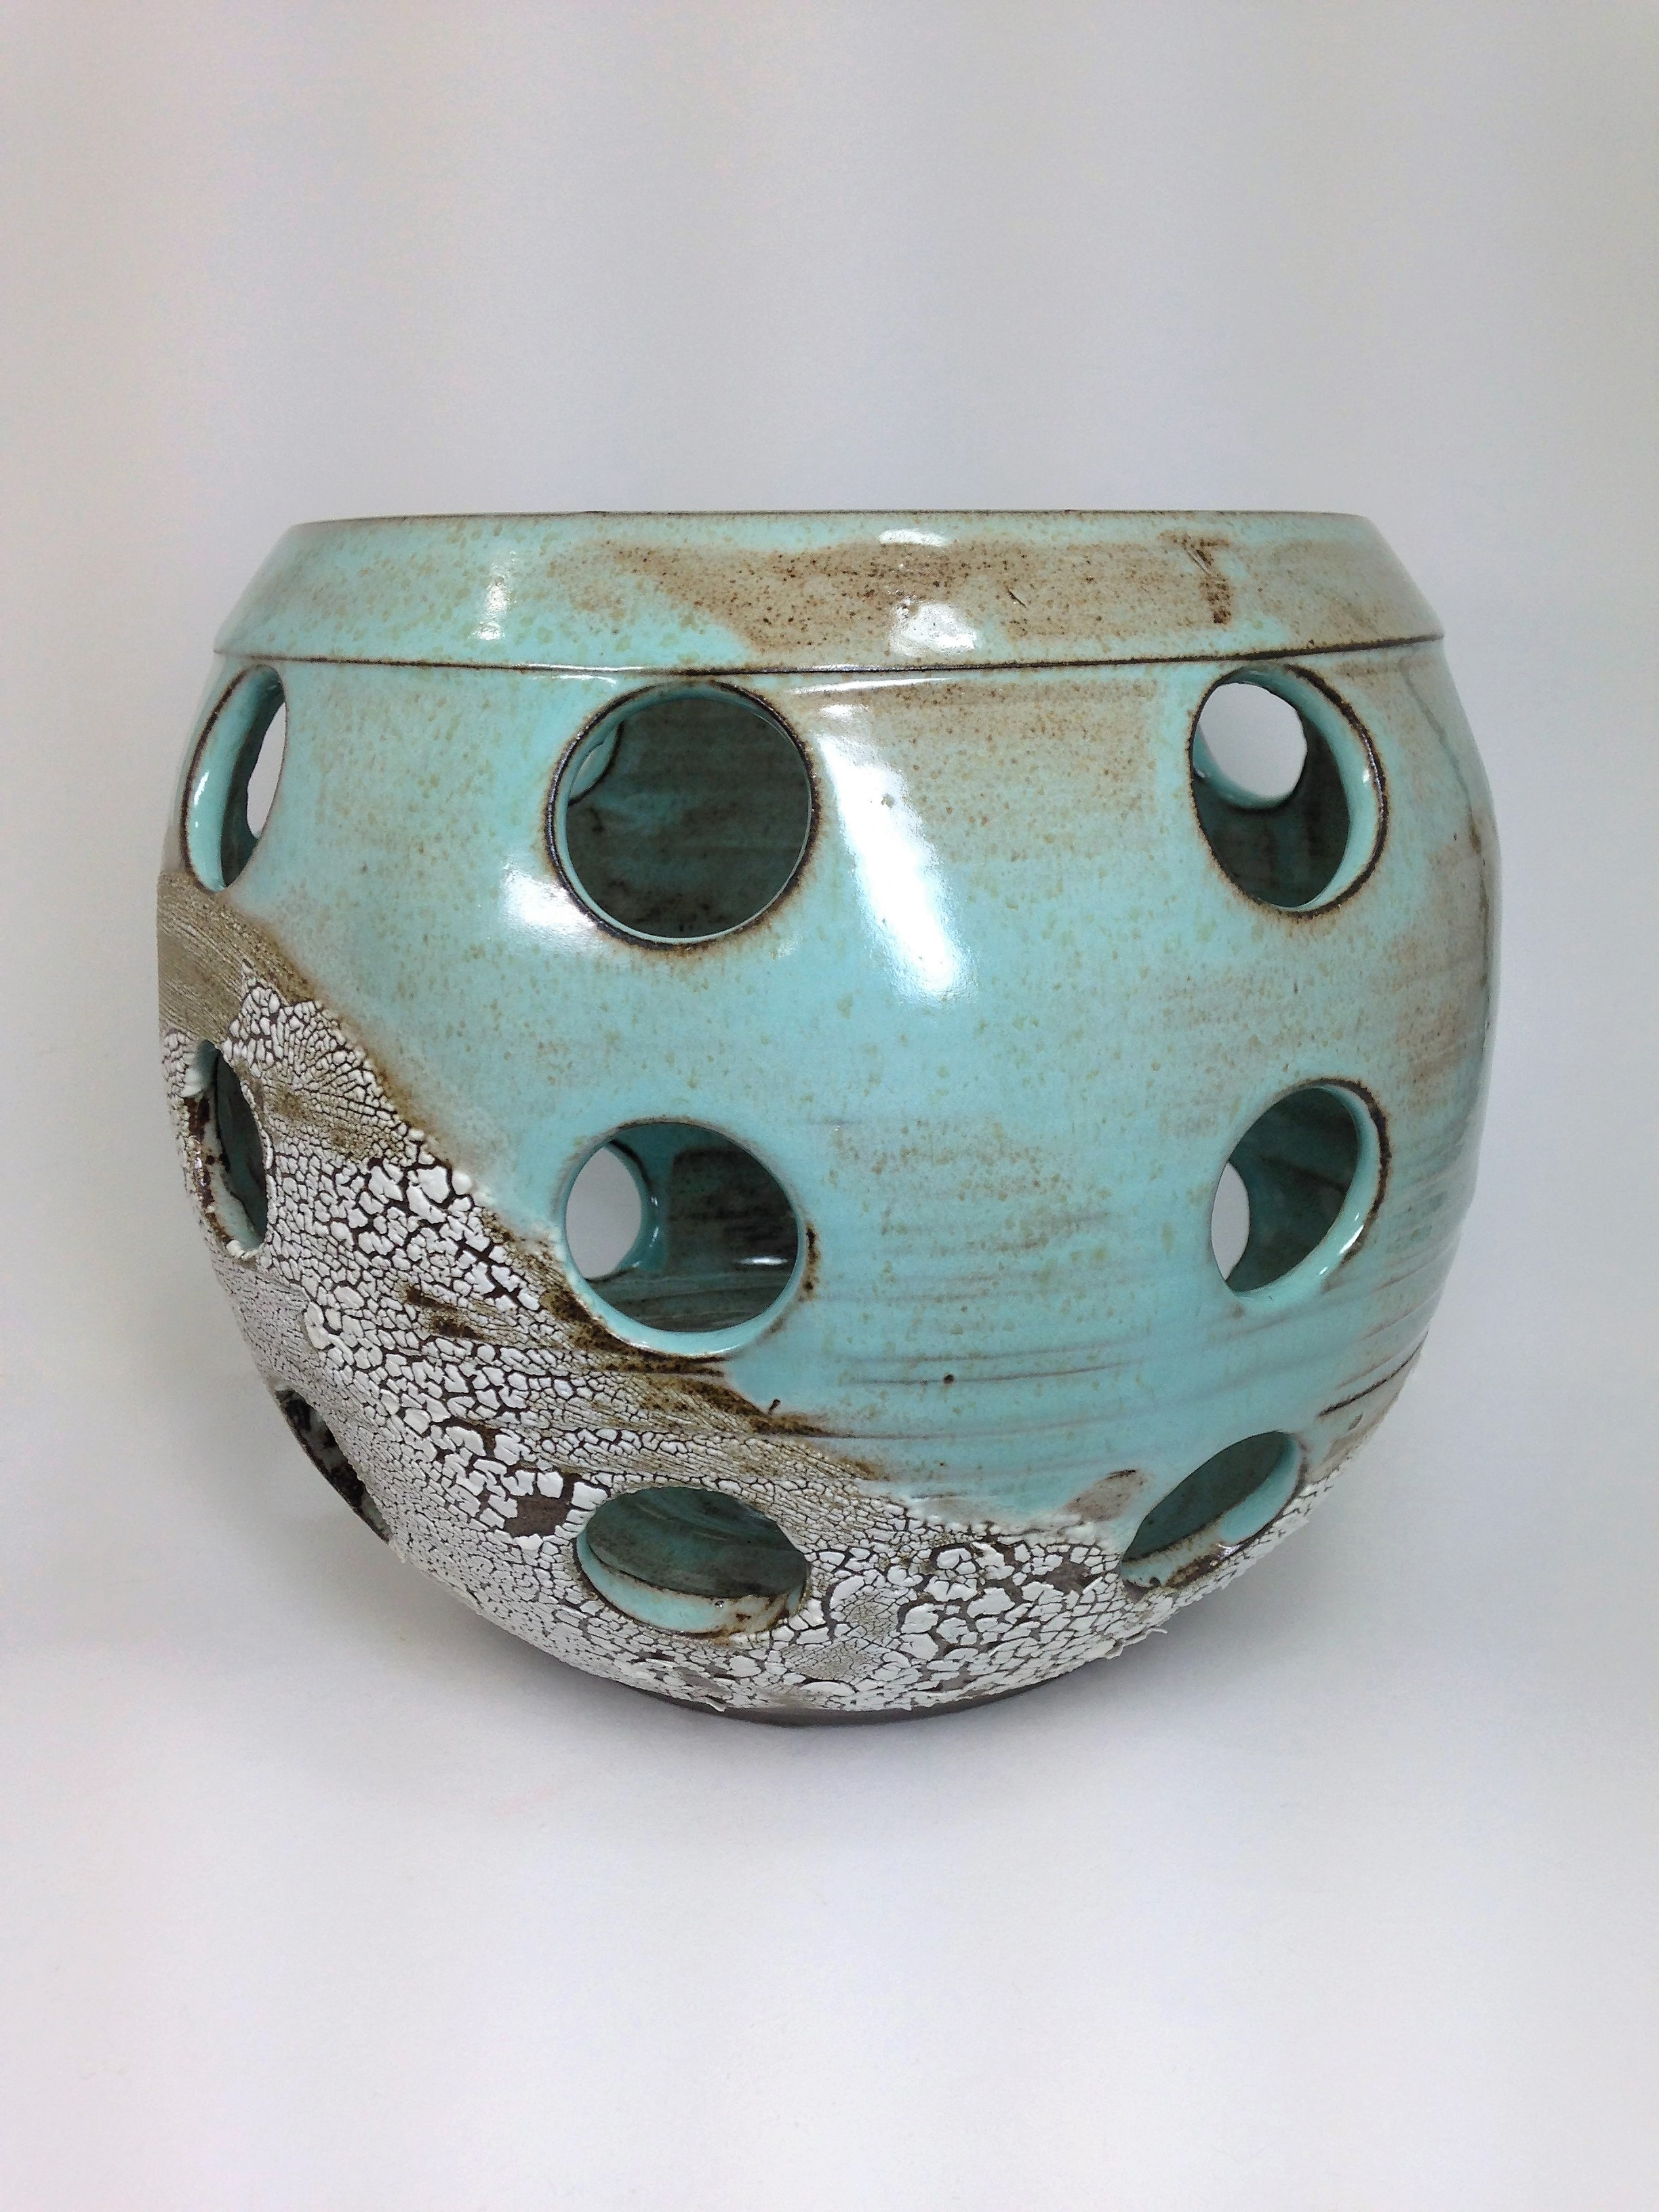 An example of an orchid pot with extra drainage holes